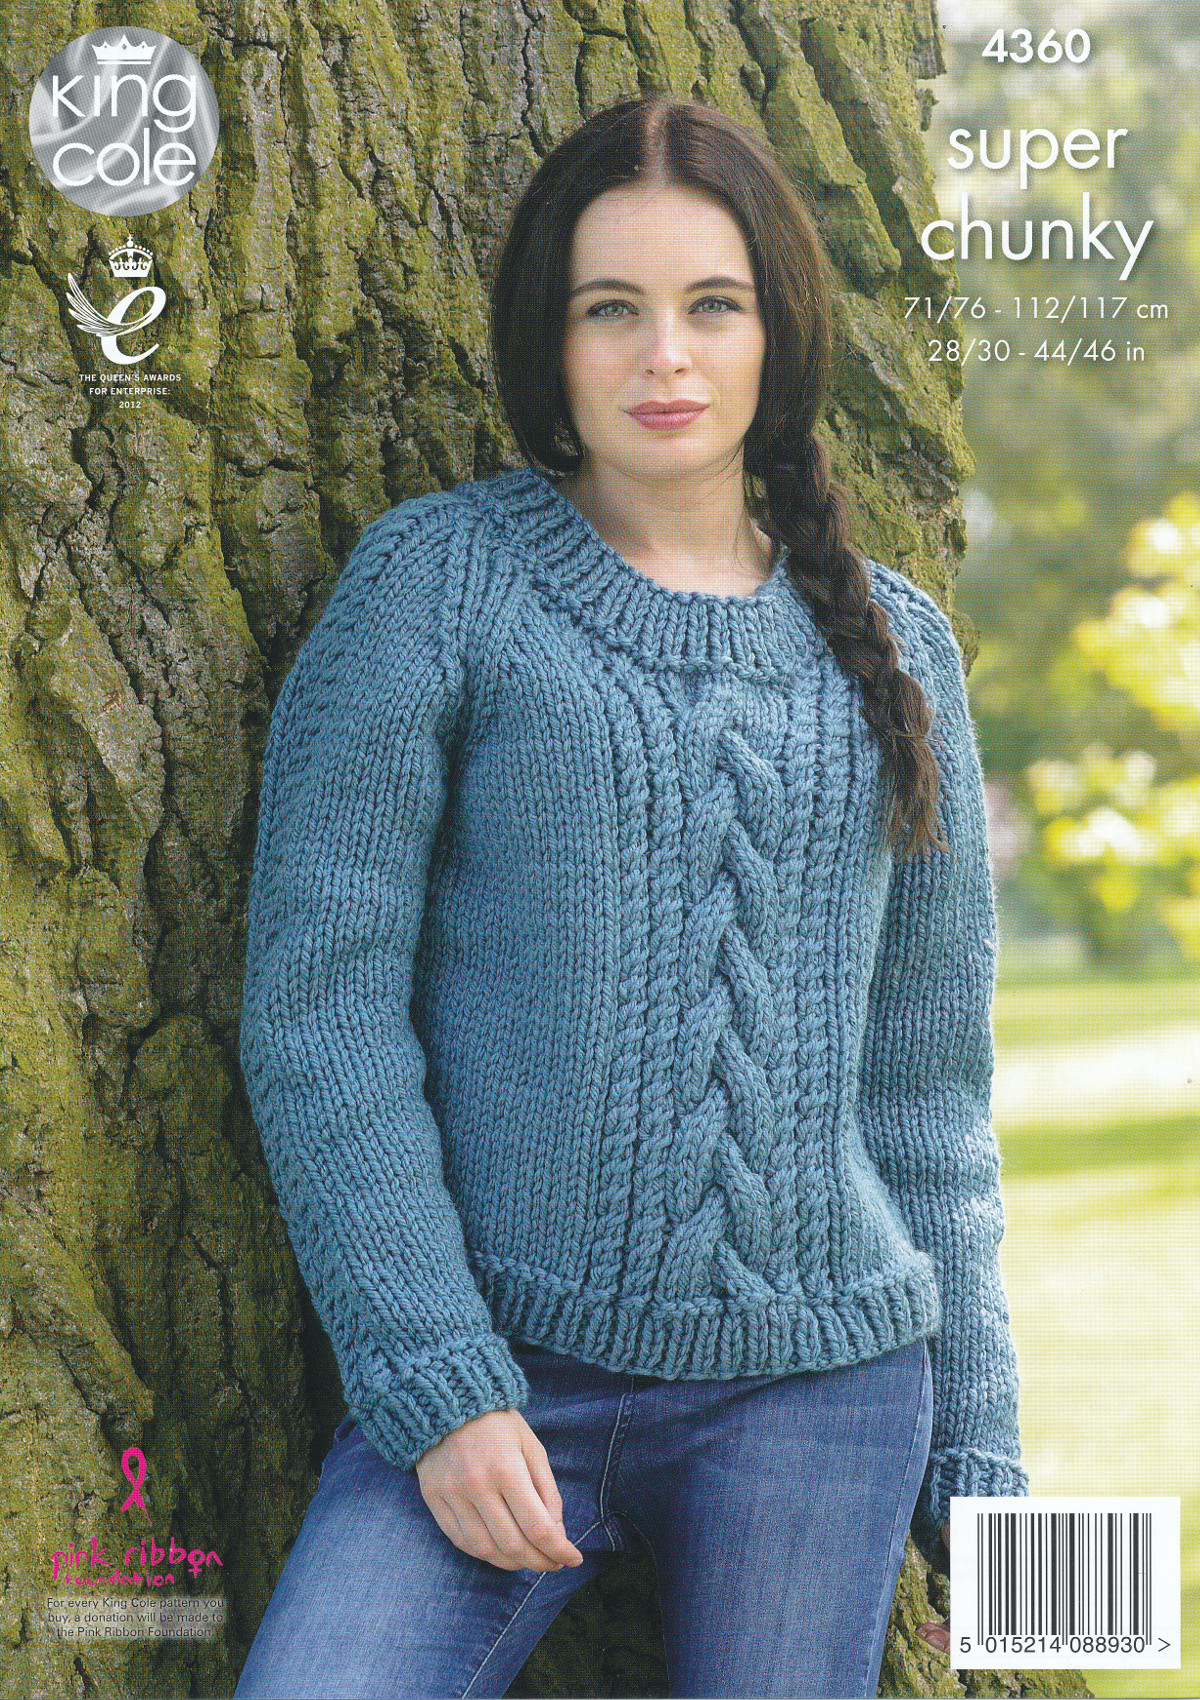 Knitting Sweaters For Girls : Ladies super chunky knitting pattern king cole cable knit